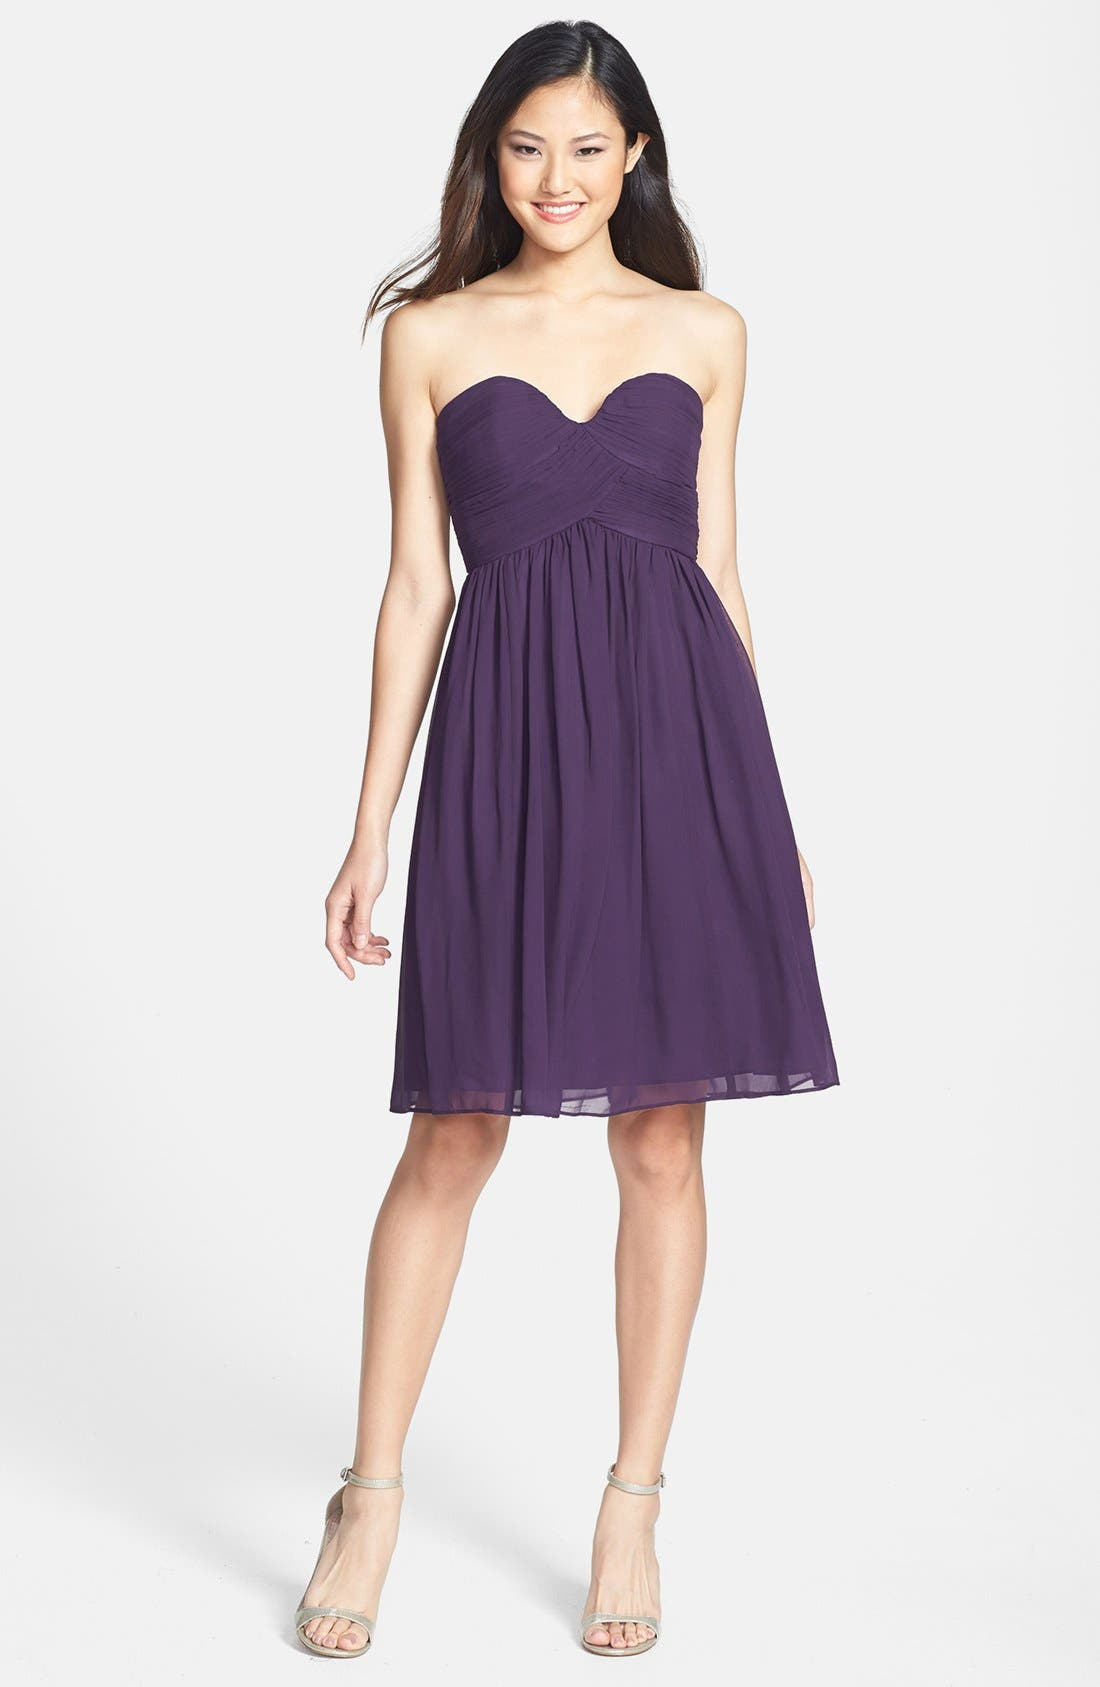 Delicate Chiffon Dresses-The Perfect Figure Flatter For Strong Women